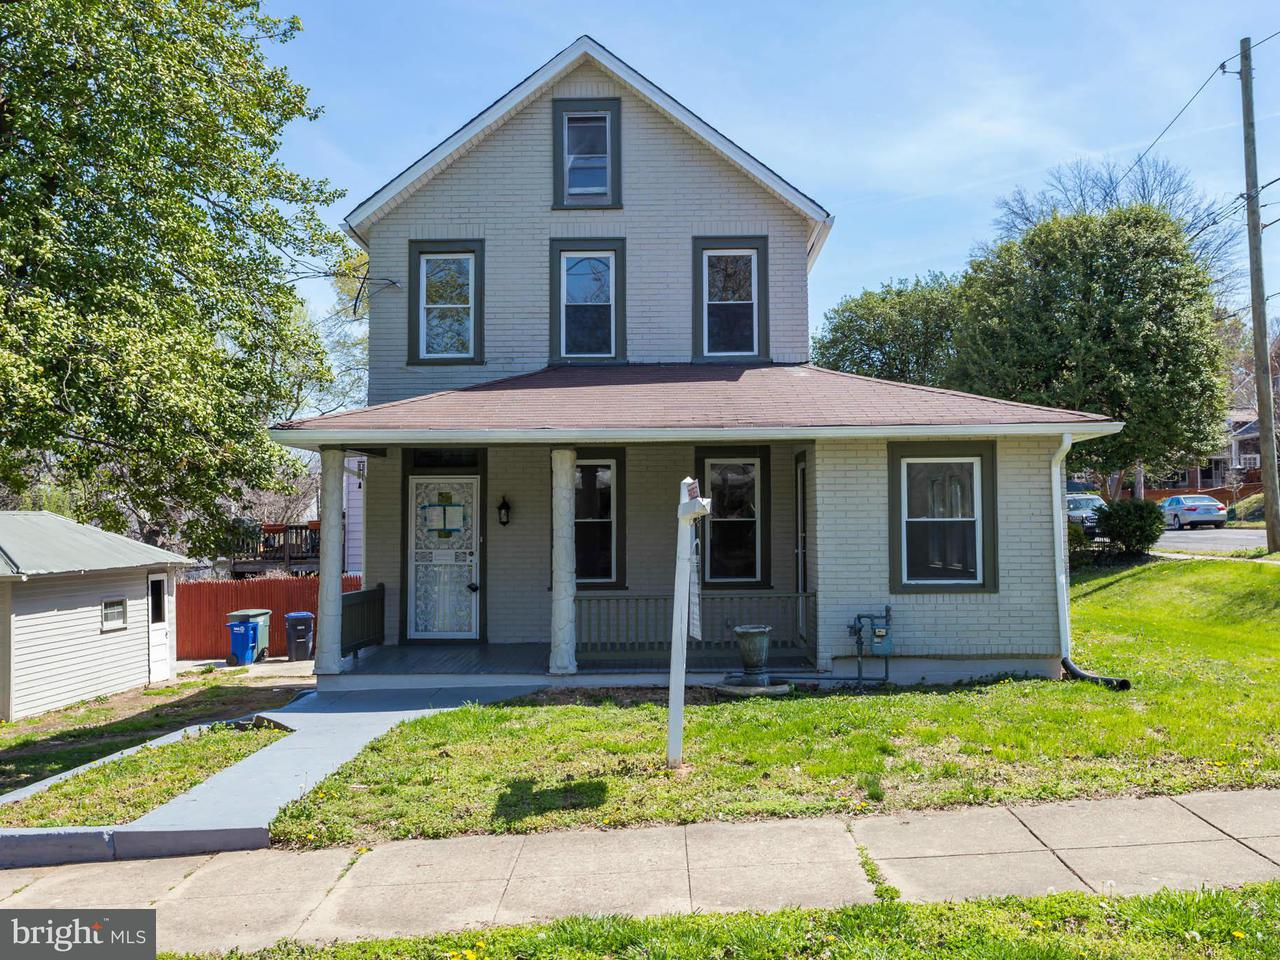 Single Family Home for Sale at 3301 17TH ST NE 3301 17TH ST NE Washington, District Of Columbia 20018 United States